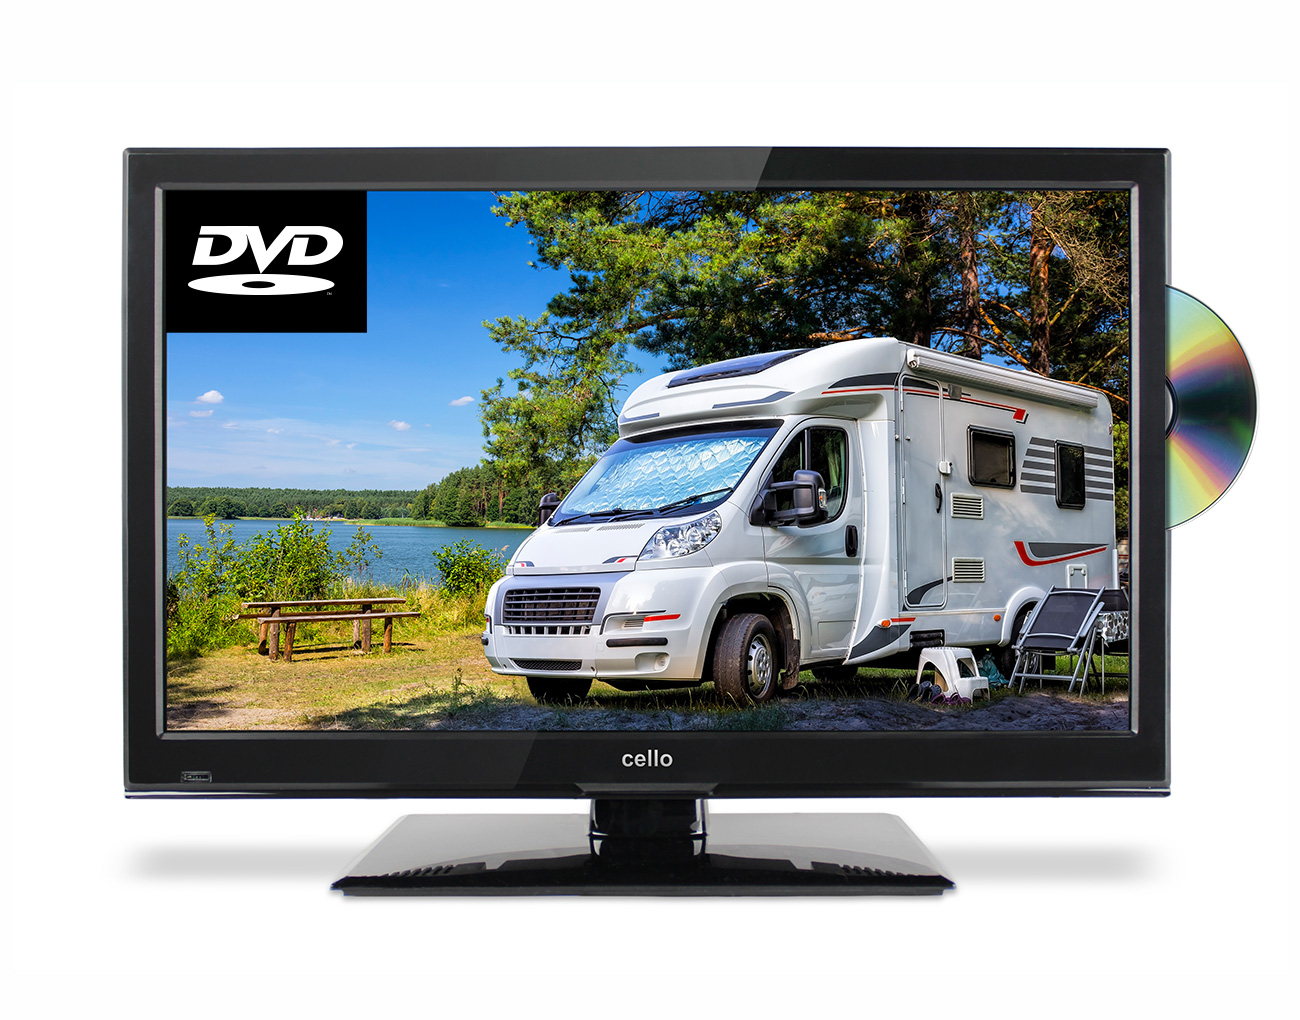 22 Full Hd Traveller Tv With Dvd Satellite Tuner Cello